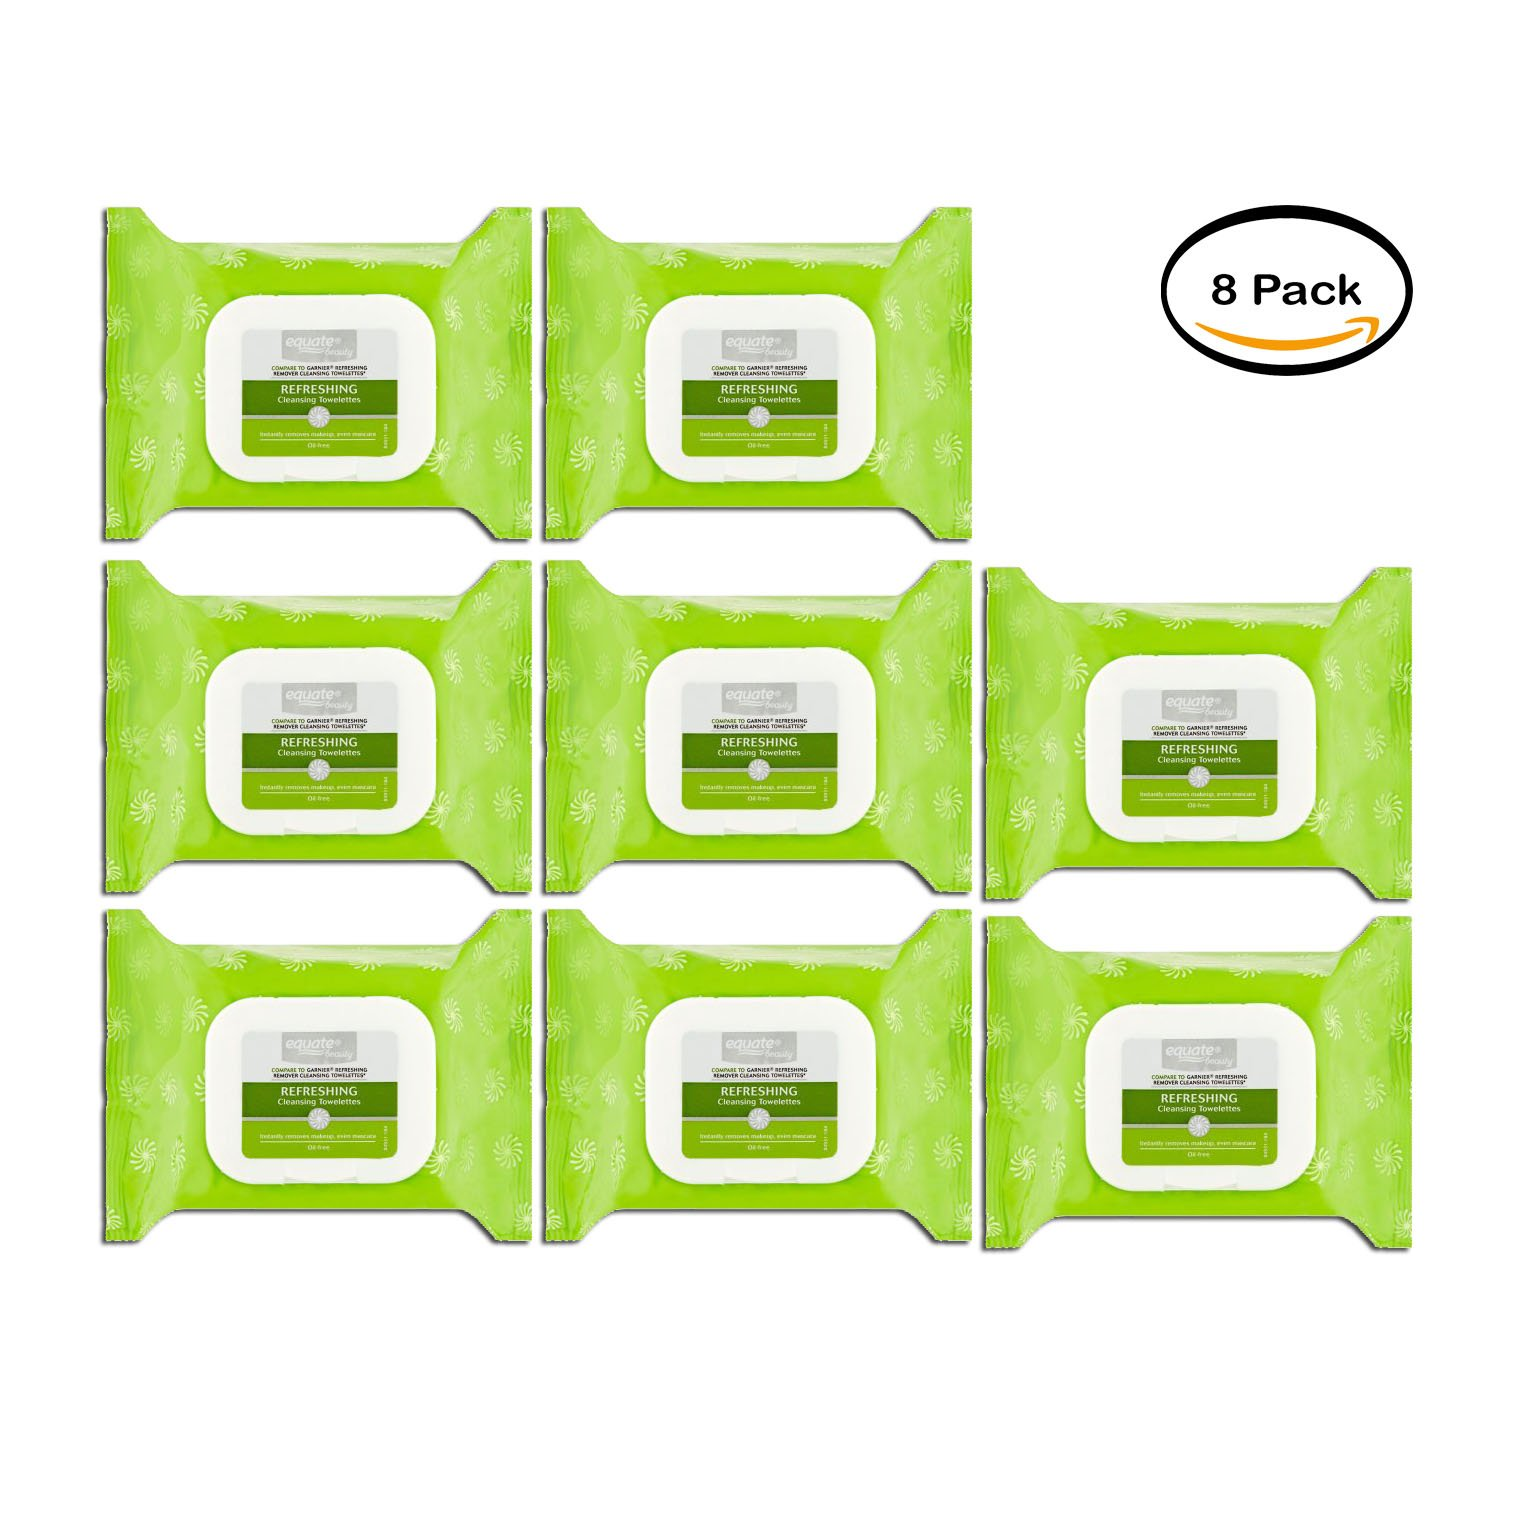 PACK OF 8 - Equate Beauty Refreshing Wet Cleansing Towelettes, 40 Ct